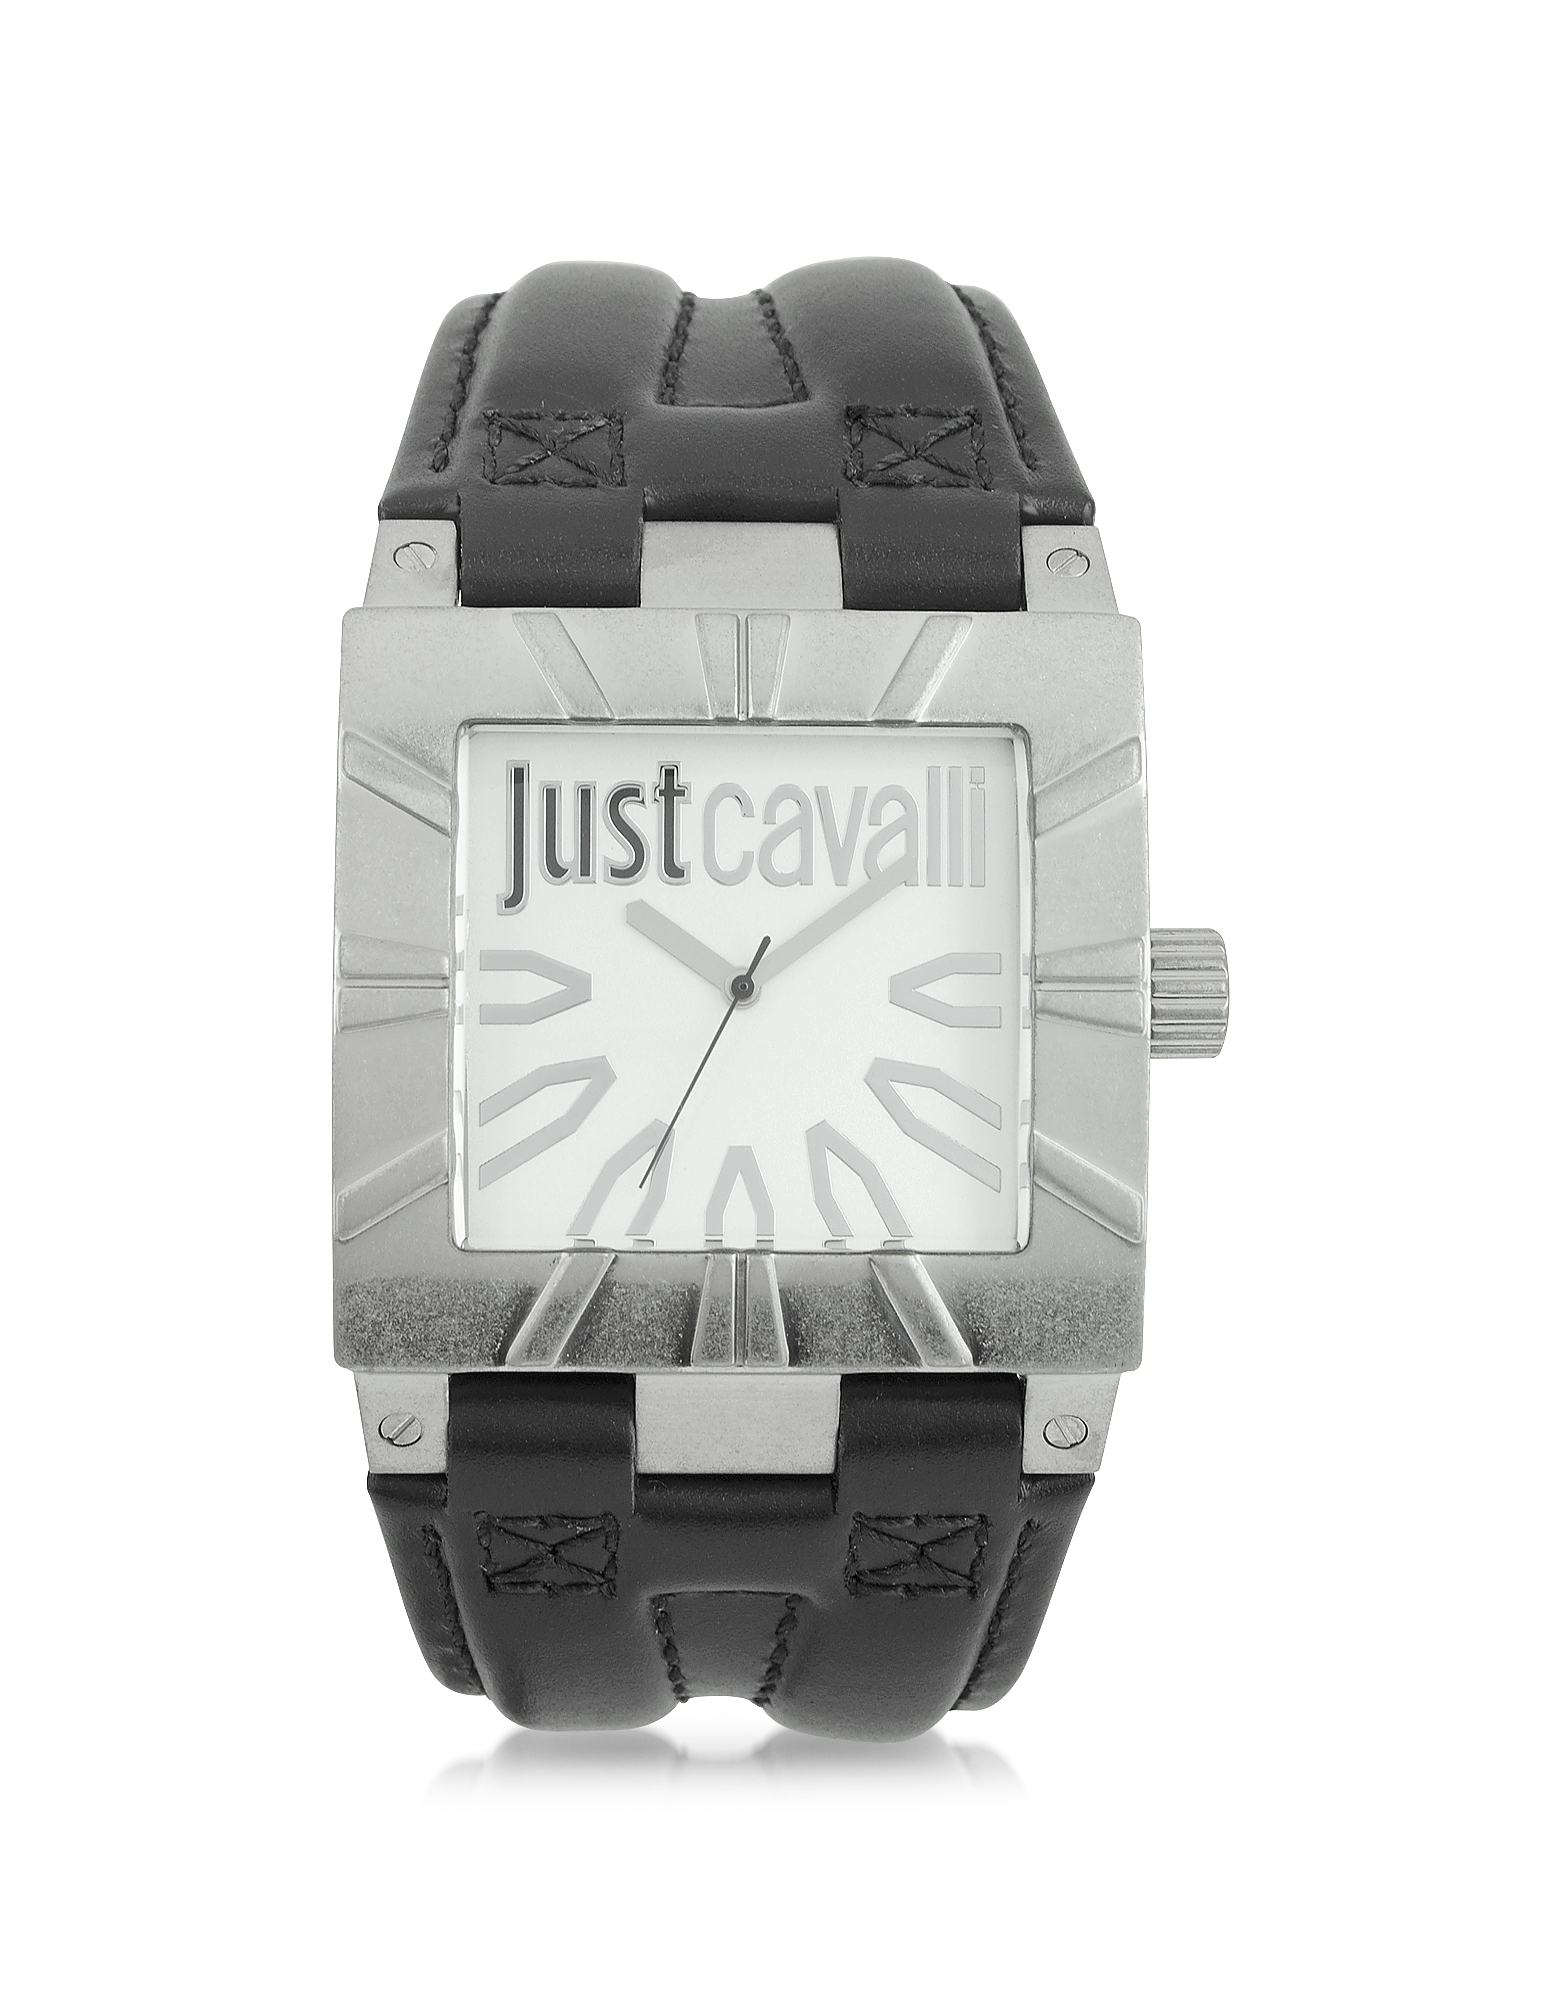 Just Cavalli Men's Watches, Timesquare 3H Silver Dial Black Strap Men's Watch